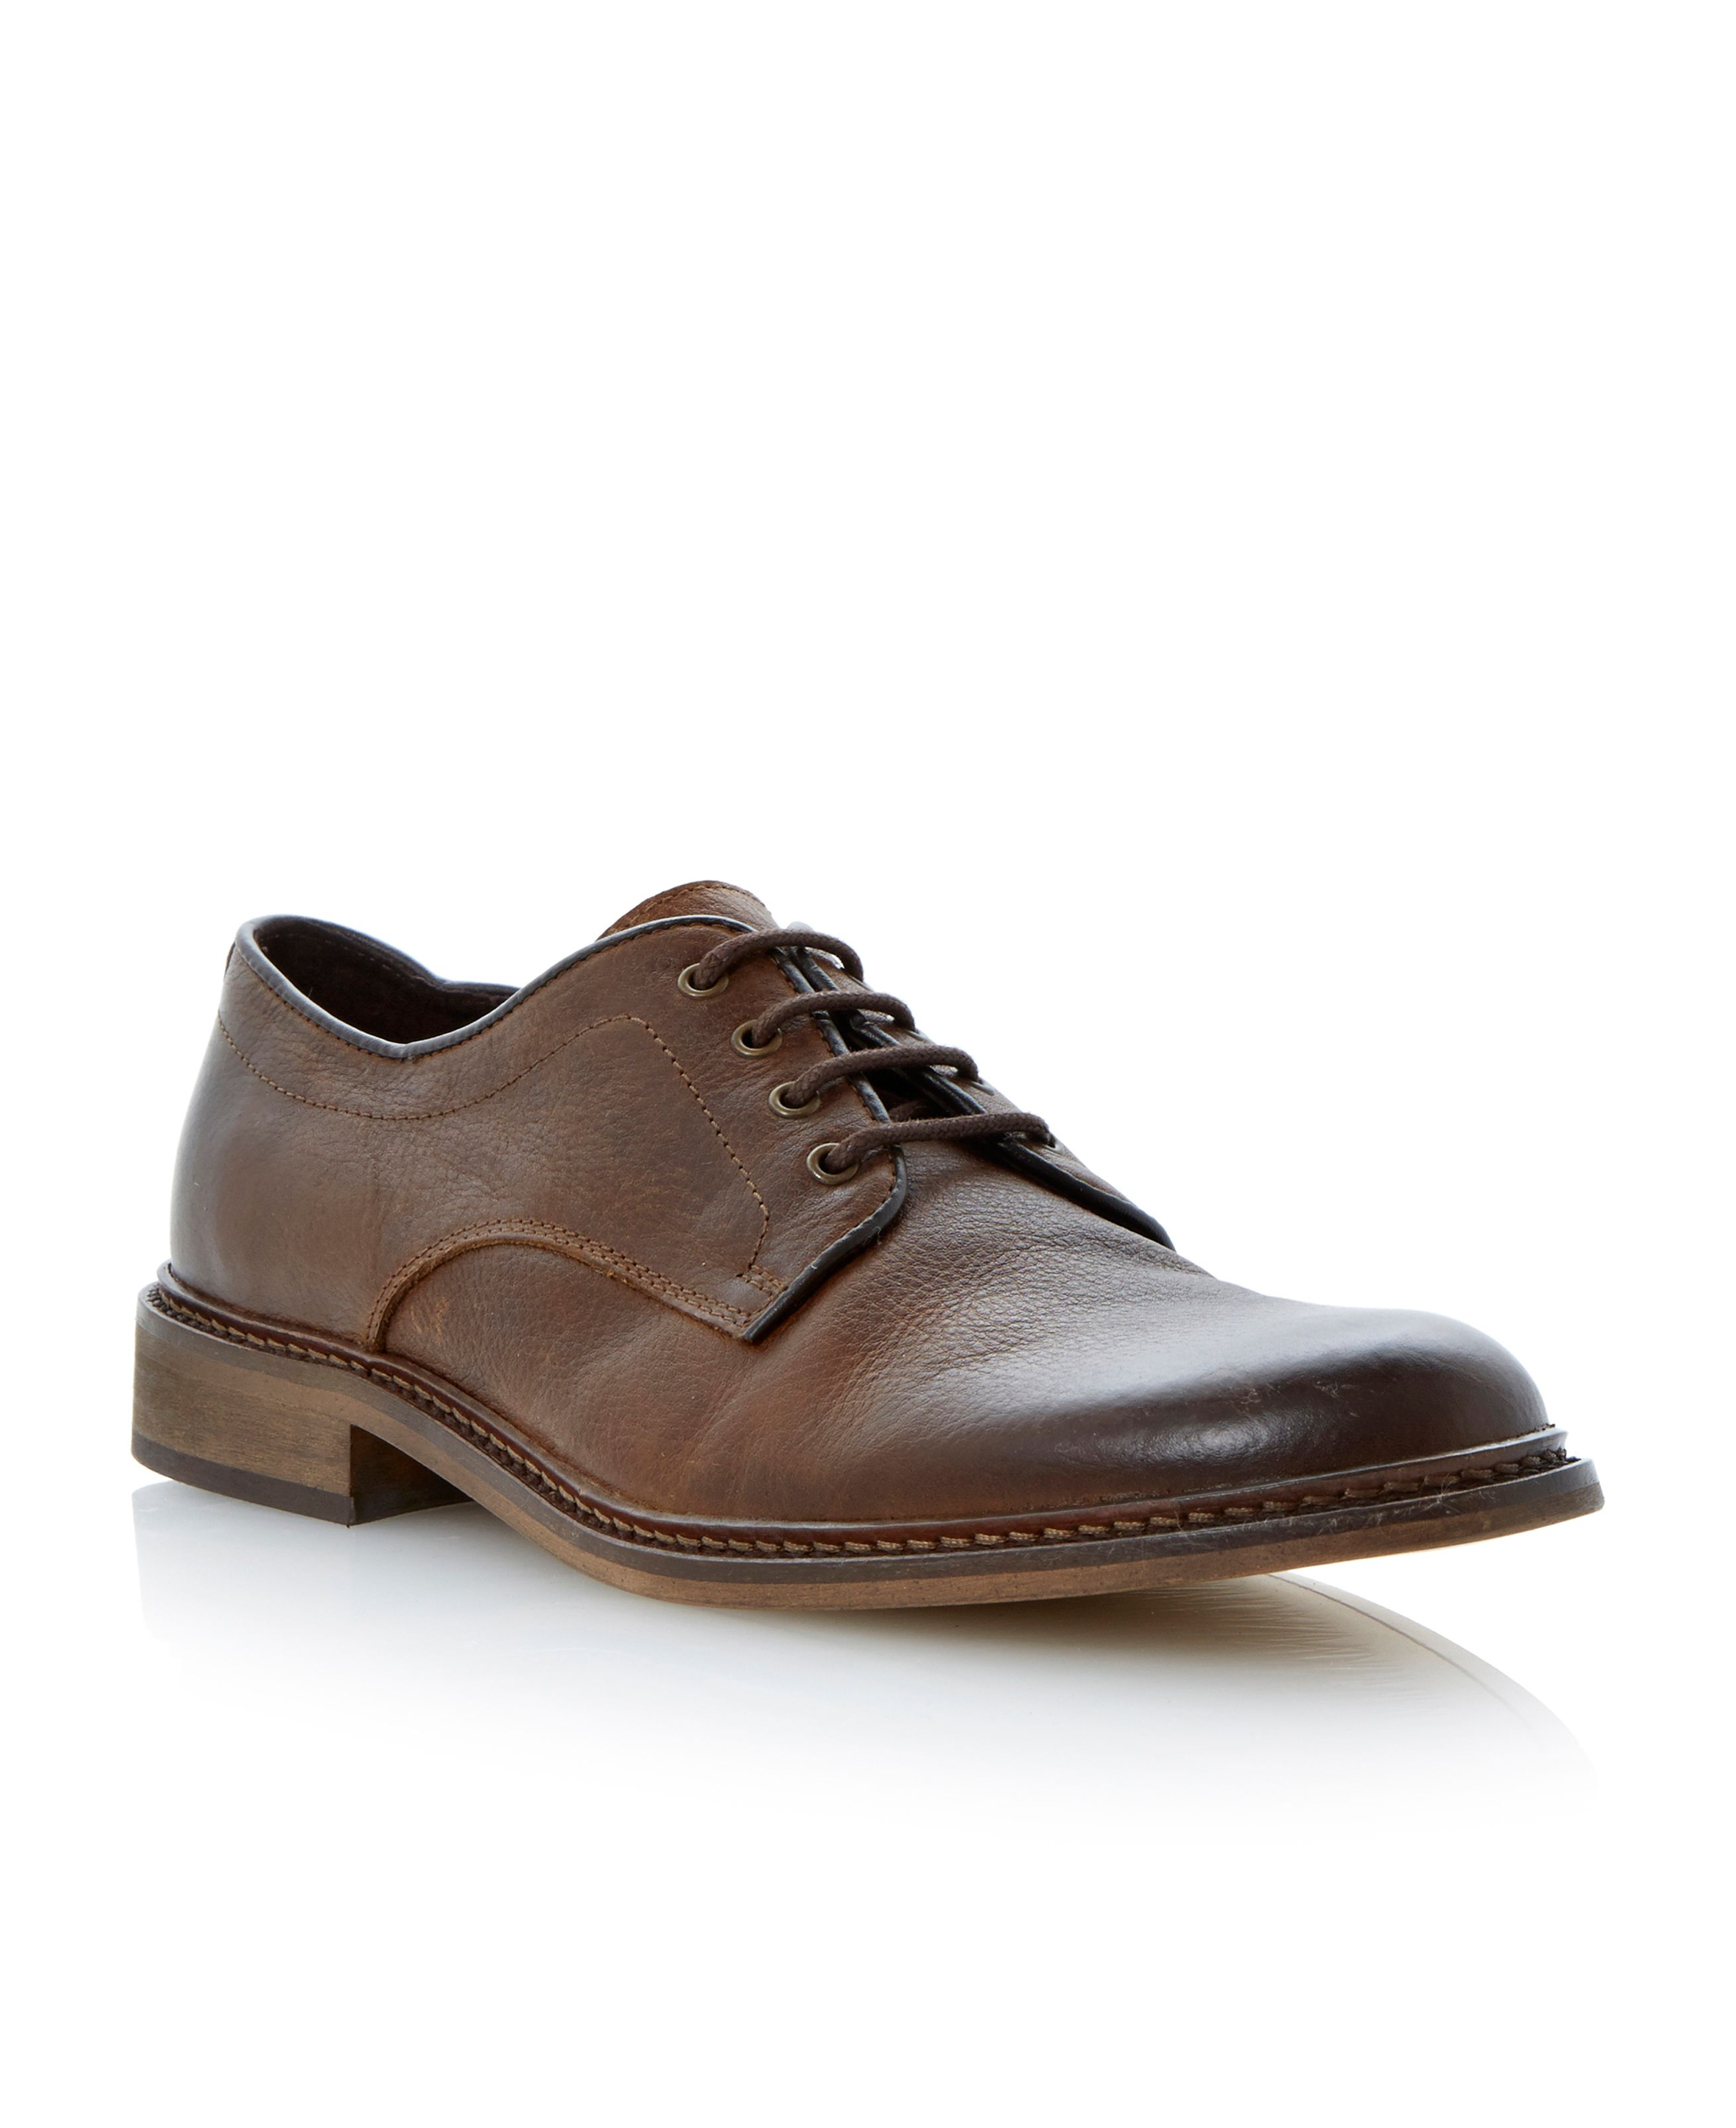 Brash lace up plain gibson shoes